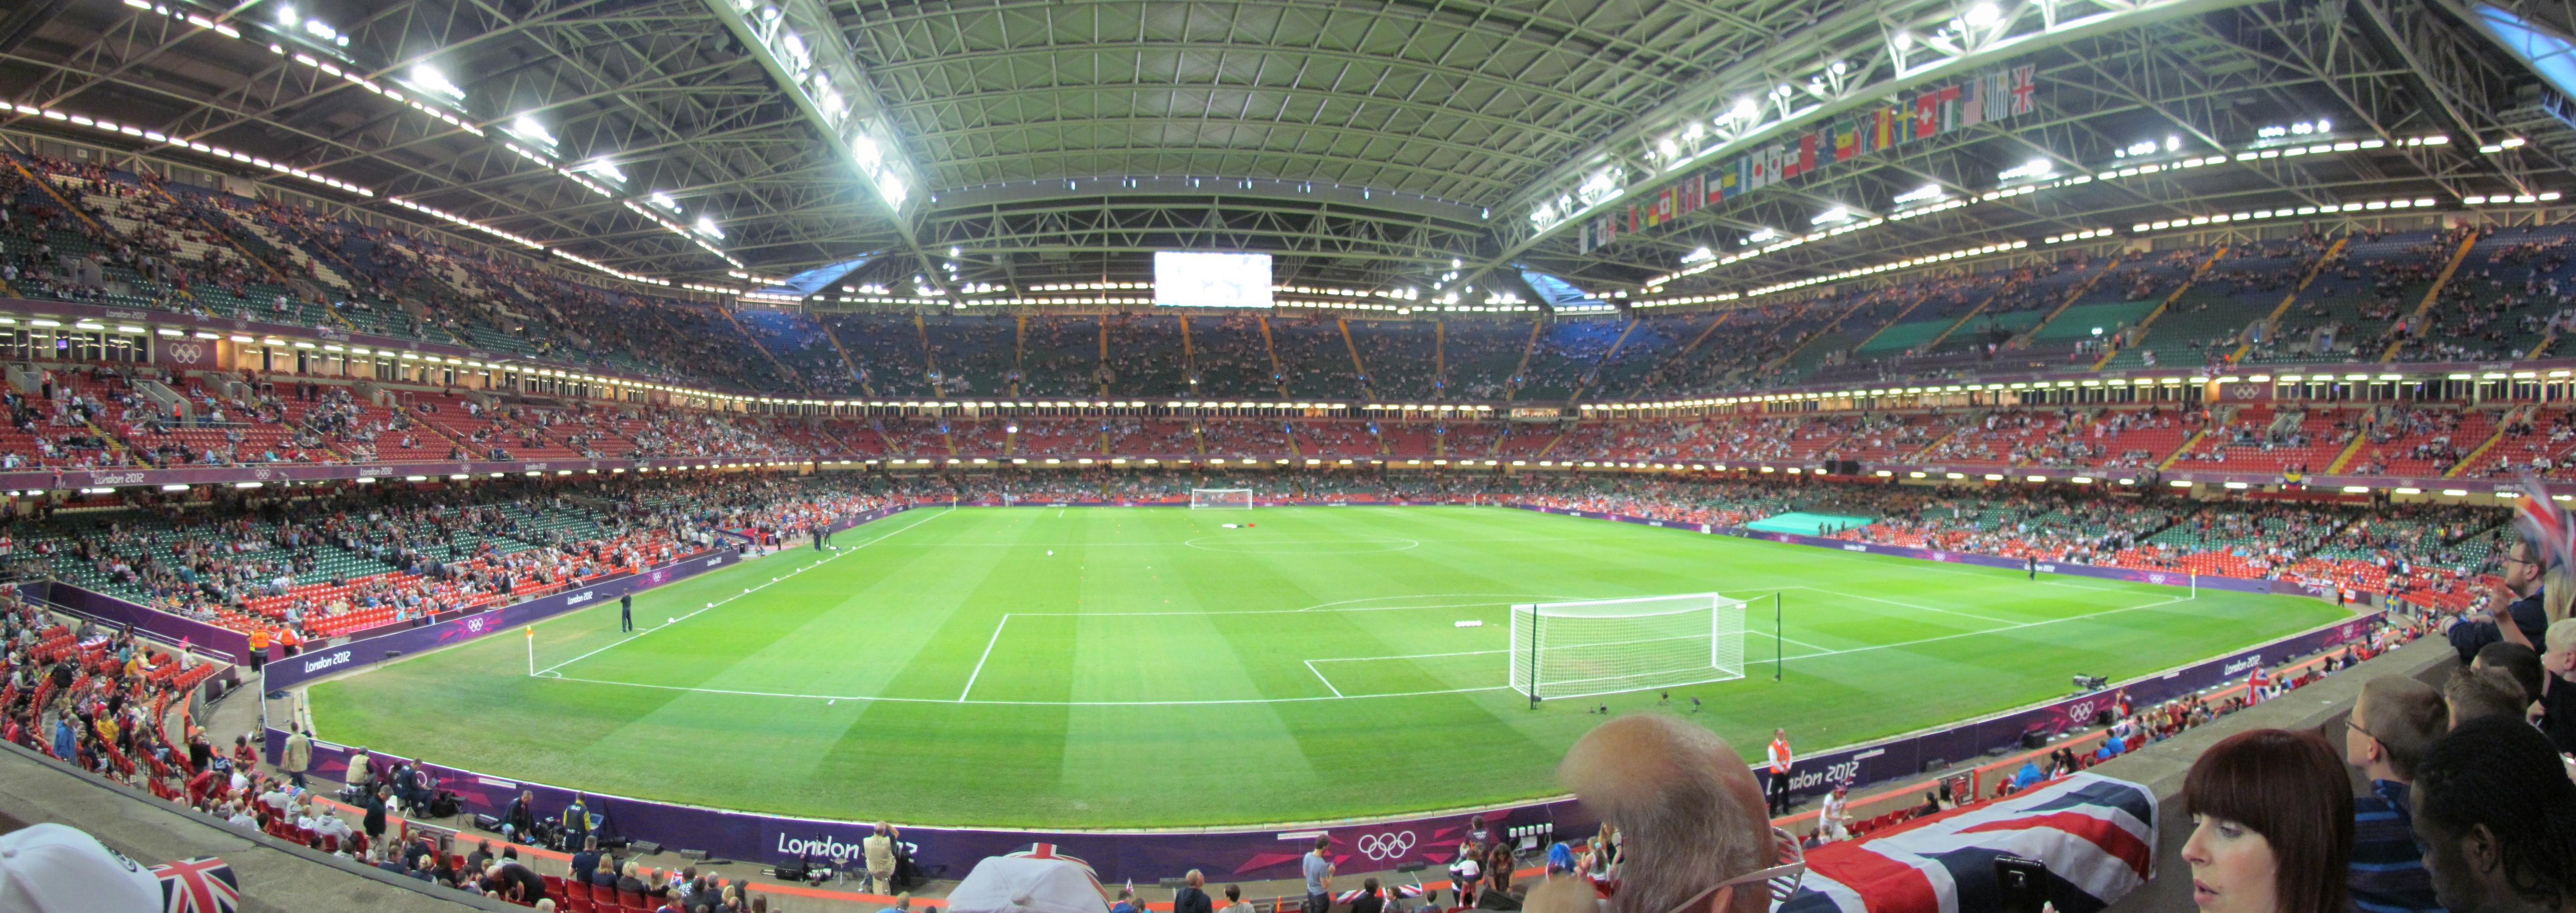 File Millennium Stadium 4 August 2012 Jpg Wikipedia